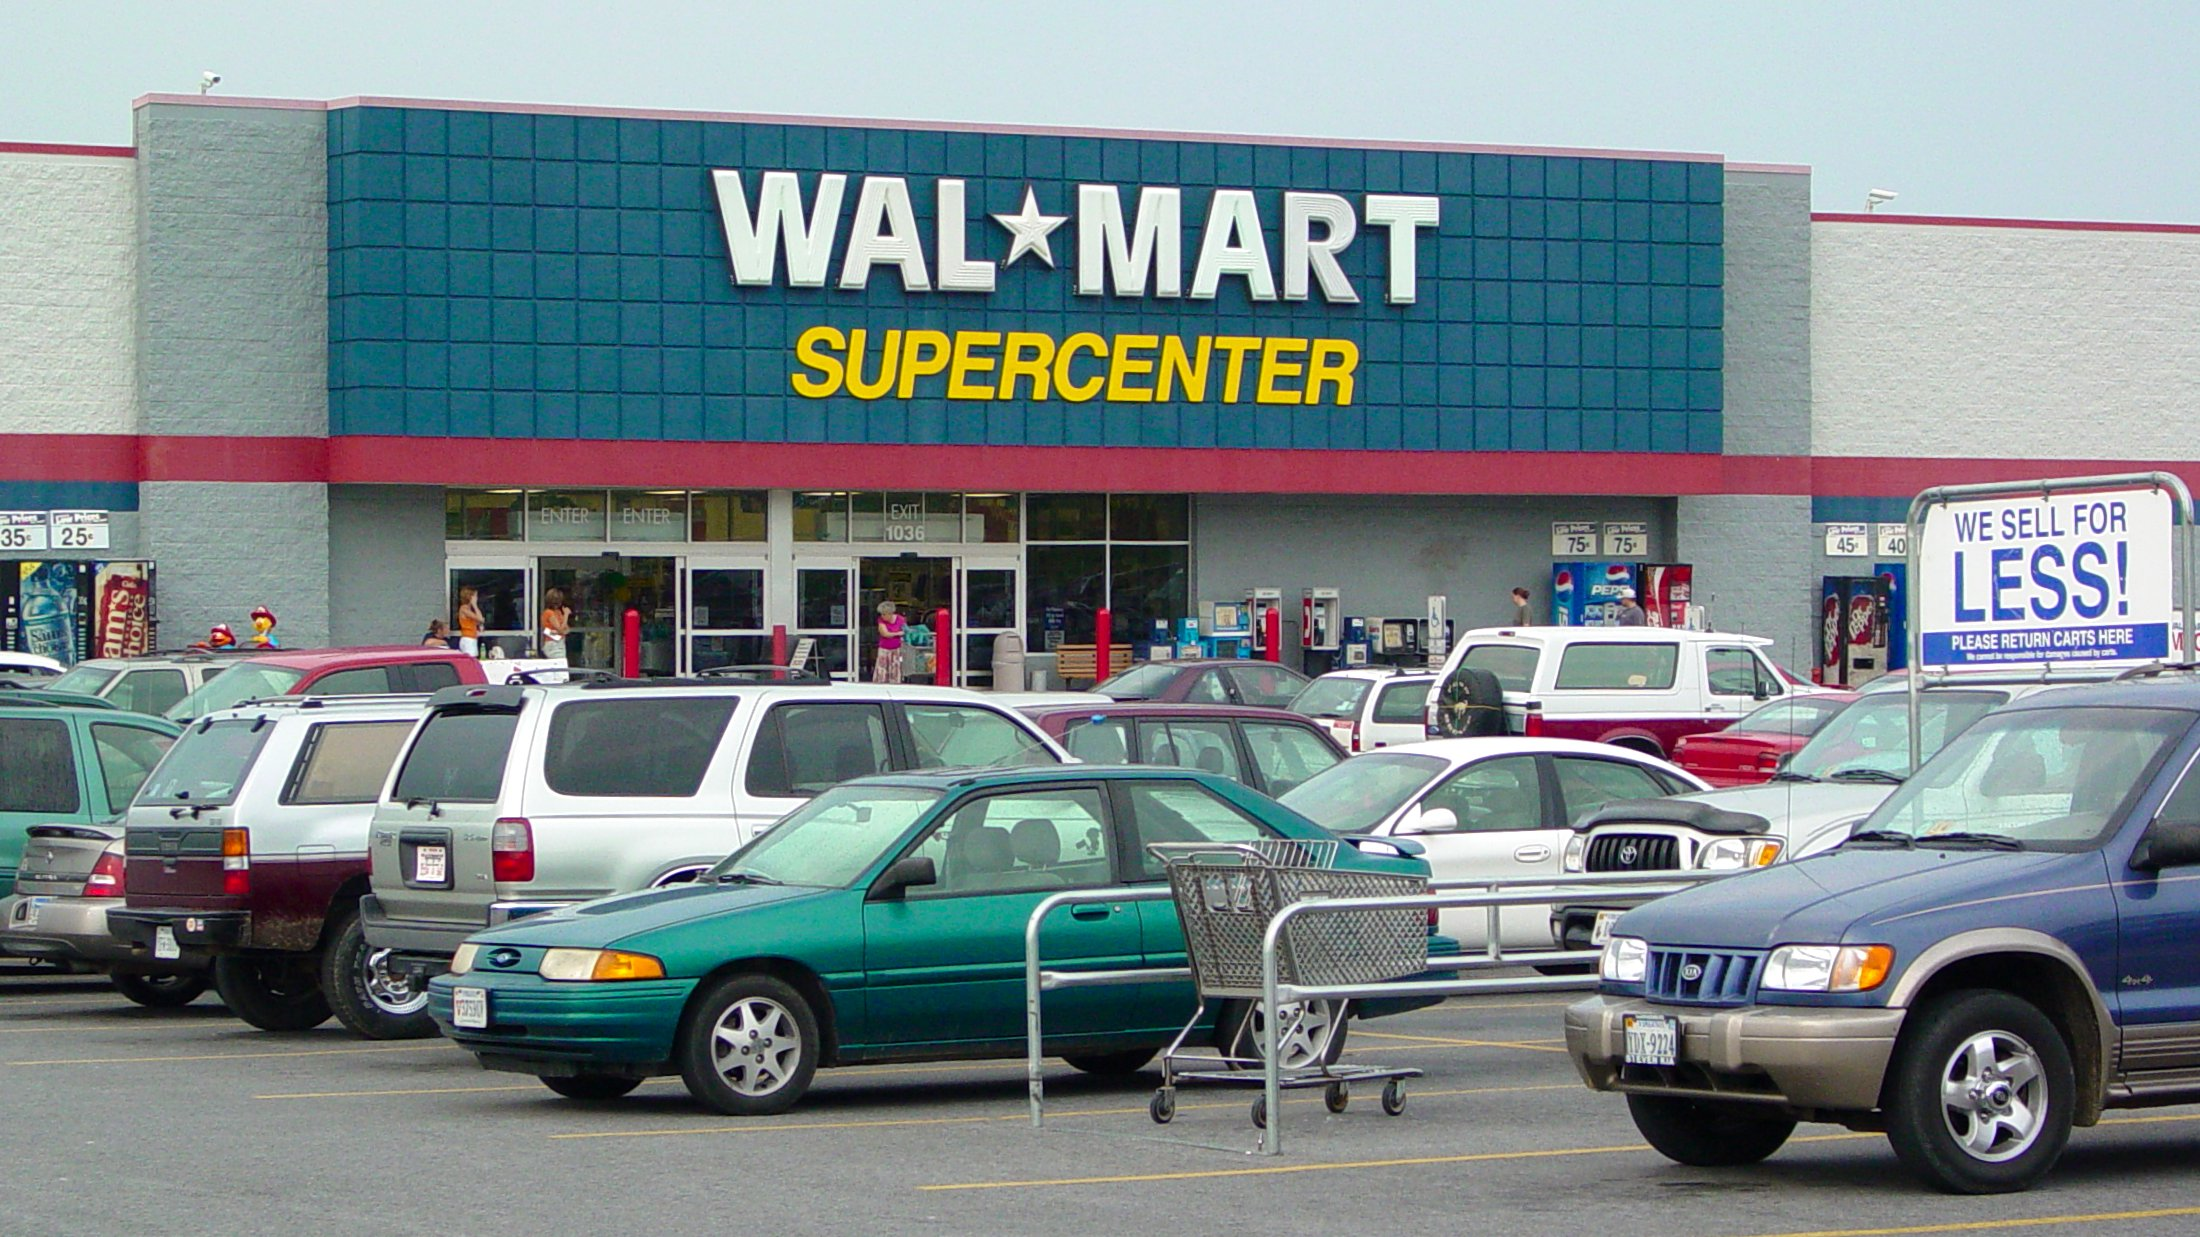 File:Wal-Mart Supercenter, Luray, Virginia.jpg - Wikimedia ...